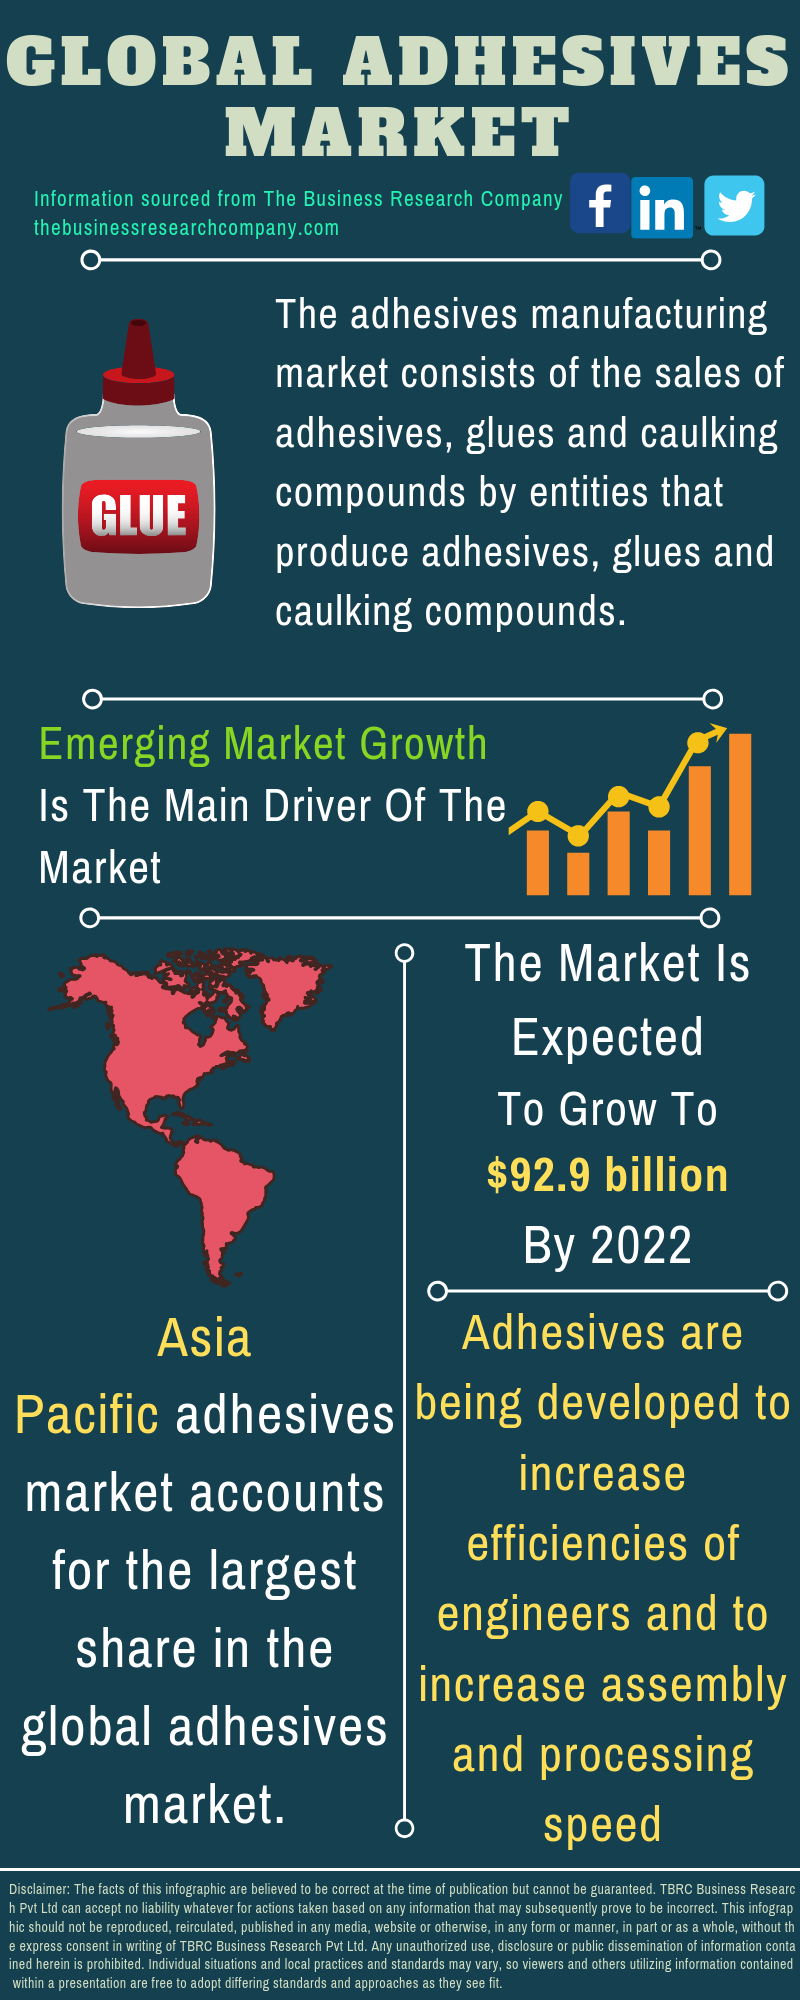 Adhesives Market